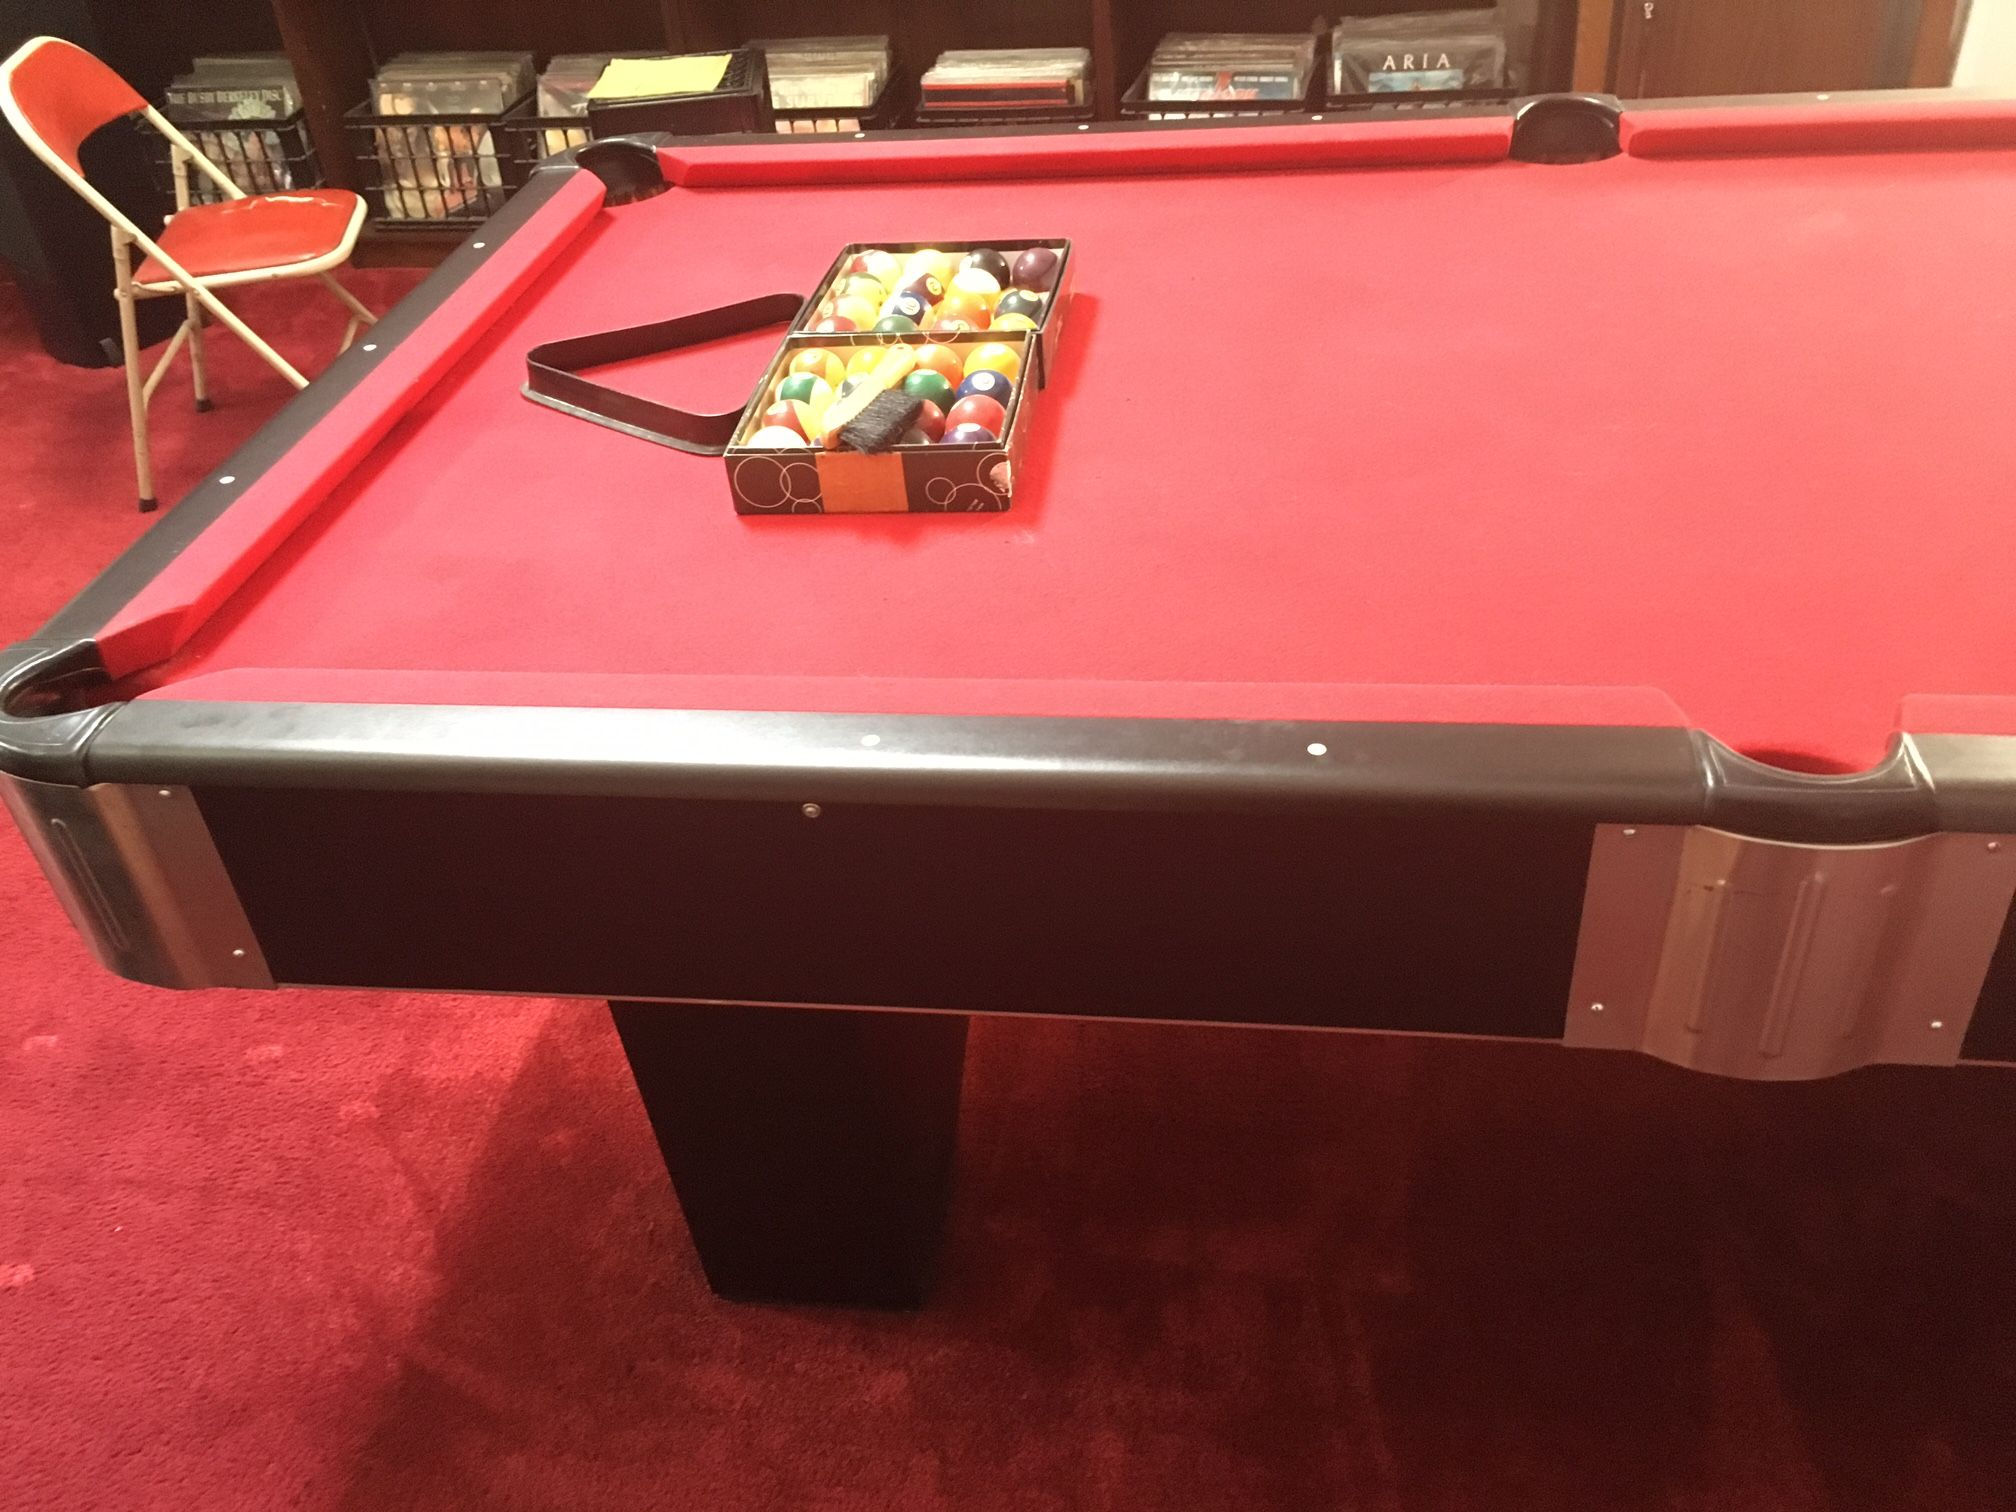 Steepleton Billiards Pool Table Used Pool Tables For Sale - Steepleton pool table